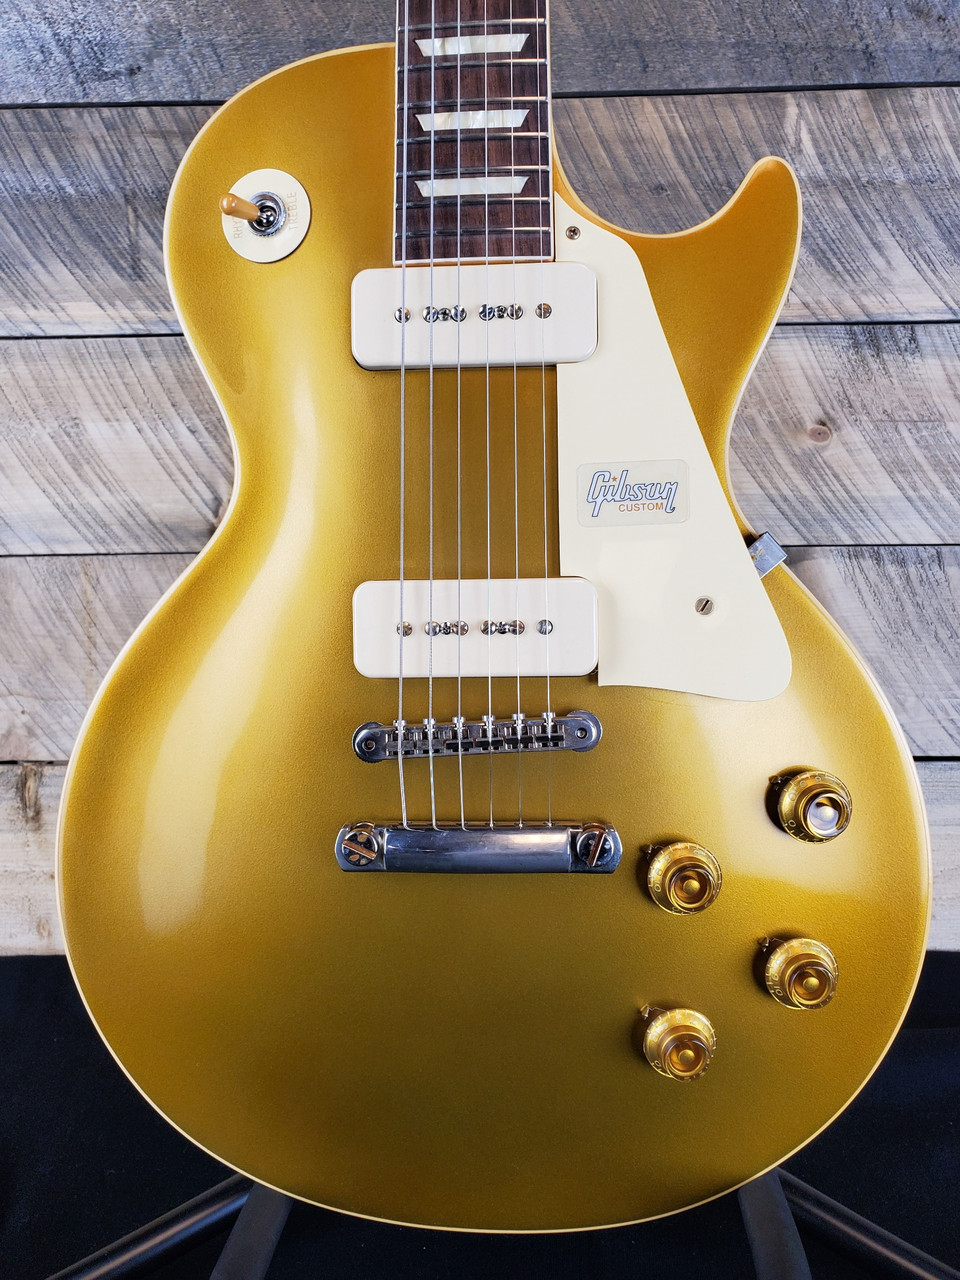 1448ed5715 Gibson Custom Shop 1956 Les Paul Goldtop Reissue R6 VOS - 69038 - The  Guitar Store